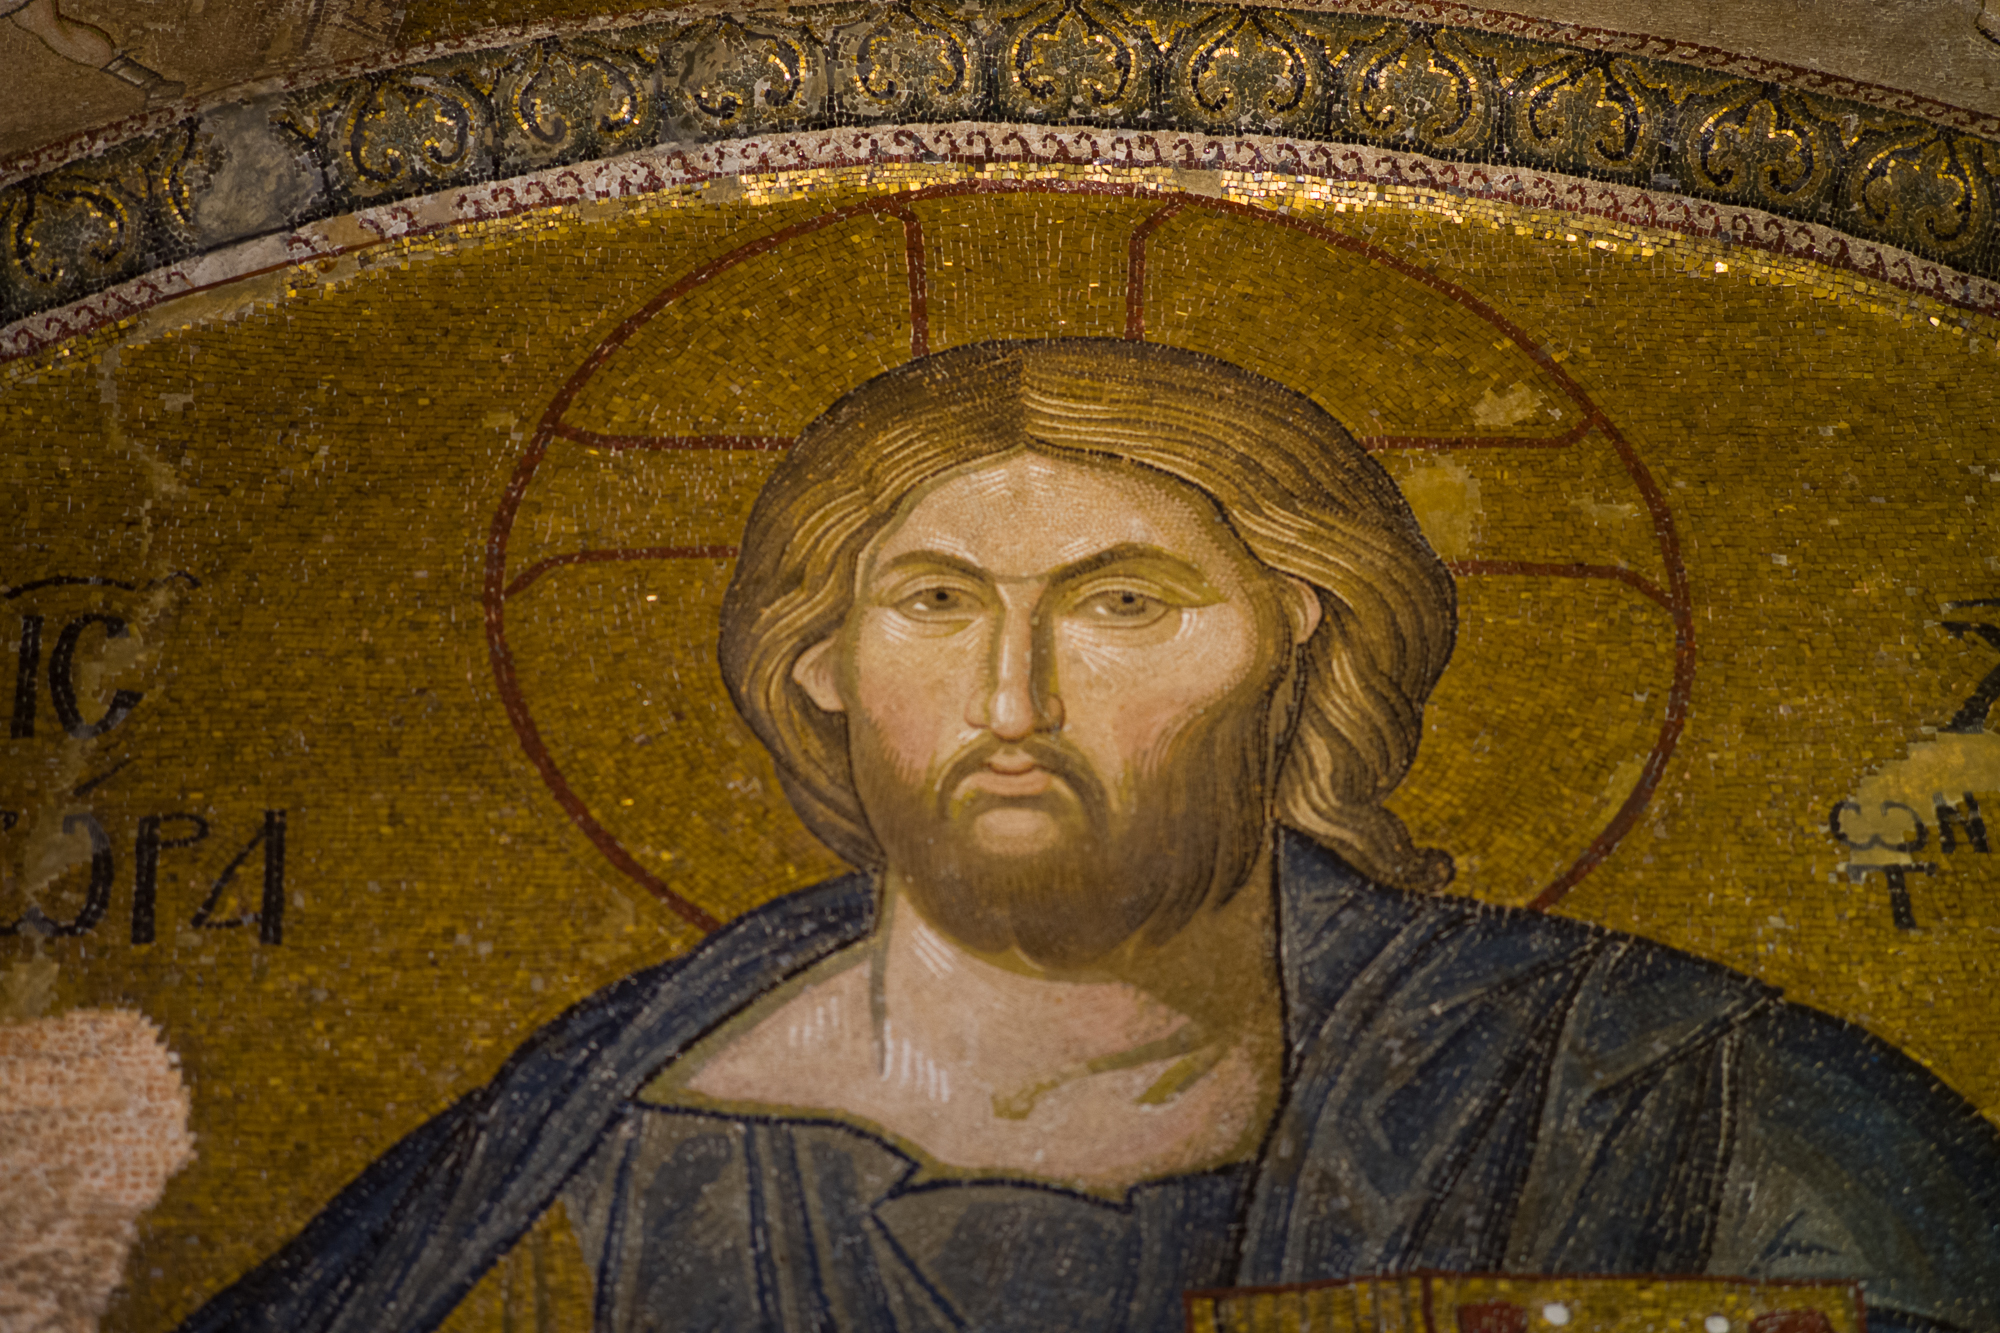 Mosaic of Christ in the Chora